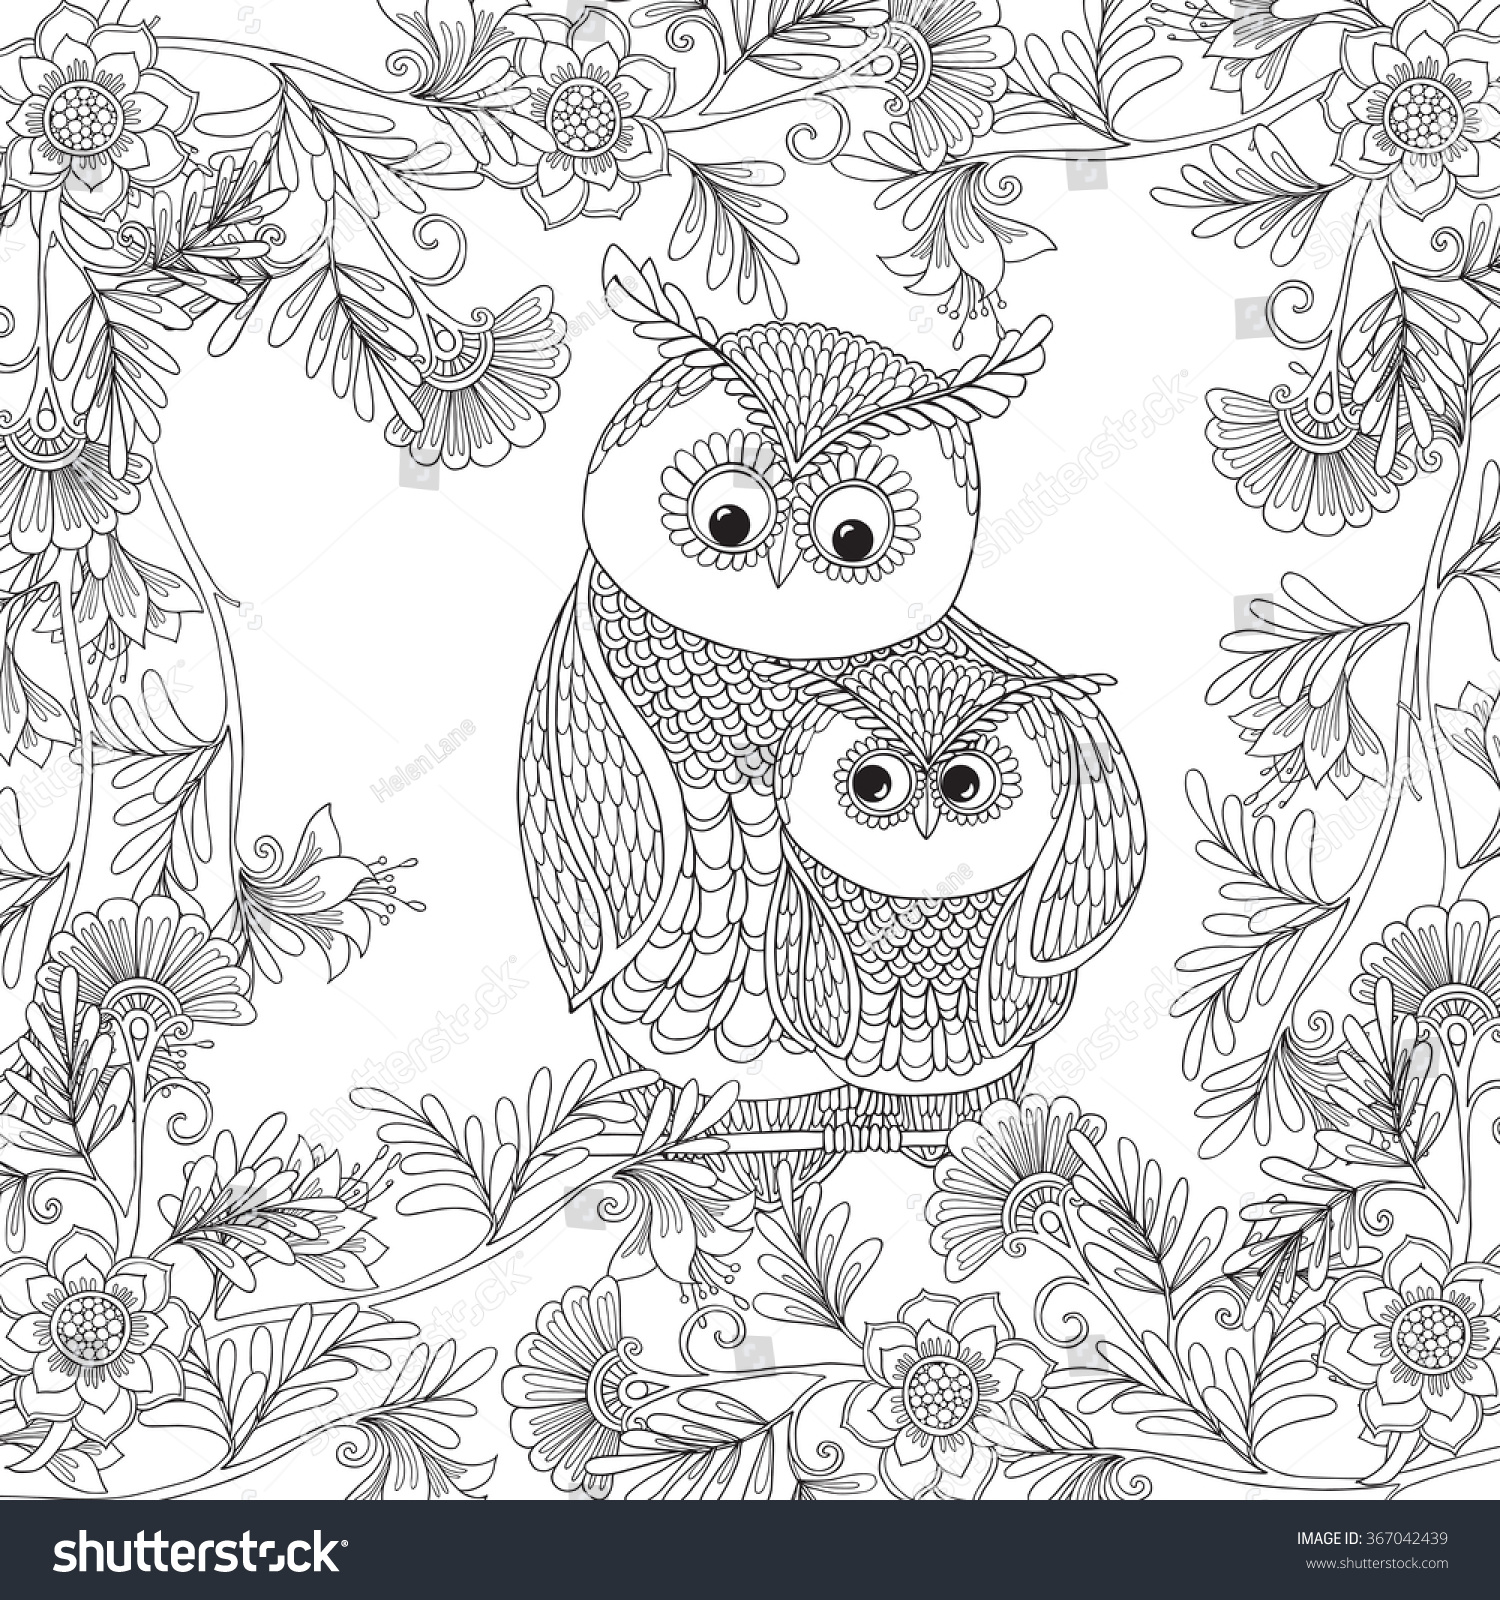 coloring book older children coloring stock vector 367042439